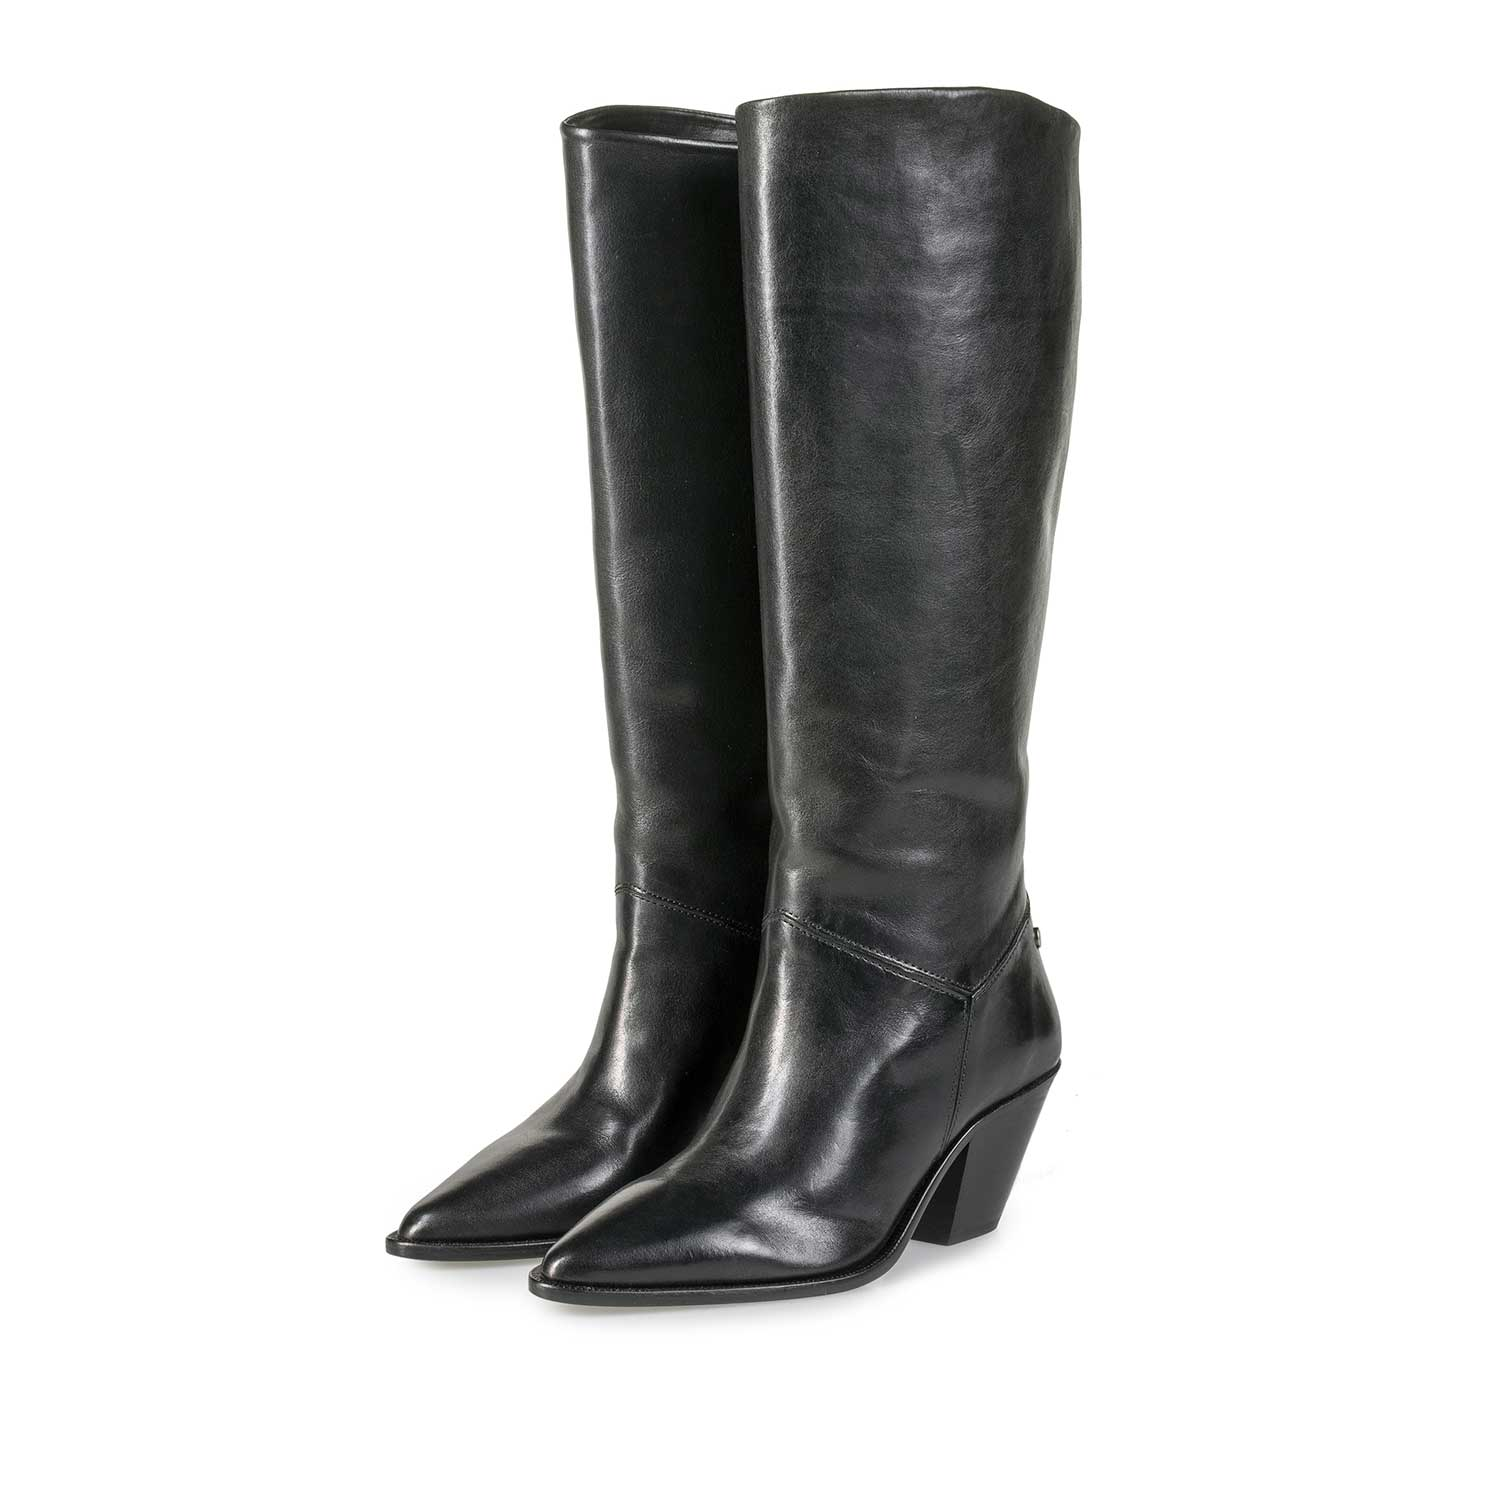 85705/00 - High black calf leather western boot